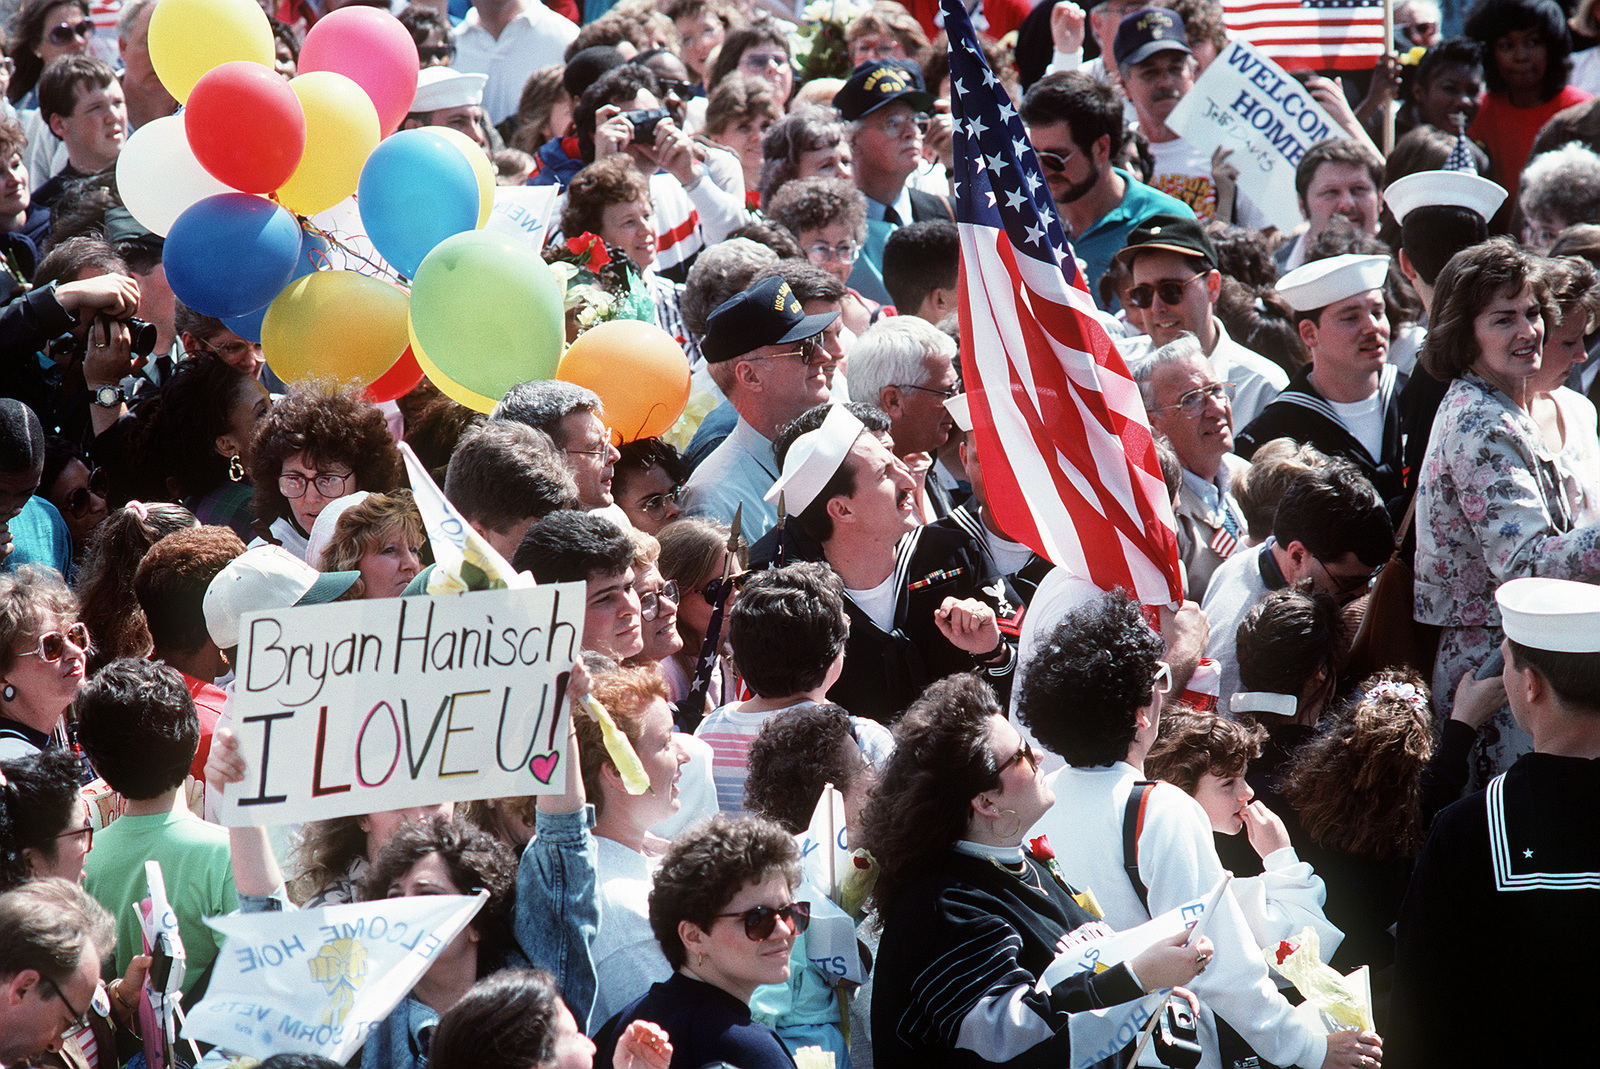 Crowd members on the pier hold banners, balloons and flags as they look for their loved ones aboard ships of the aircraft carrier USS JOHN F. KENNEDY (CV-67) battle group. The vessels are returning to Norfolk following deployment in the Persian Gulf area during Operation Desert Storm